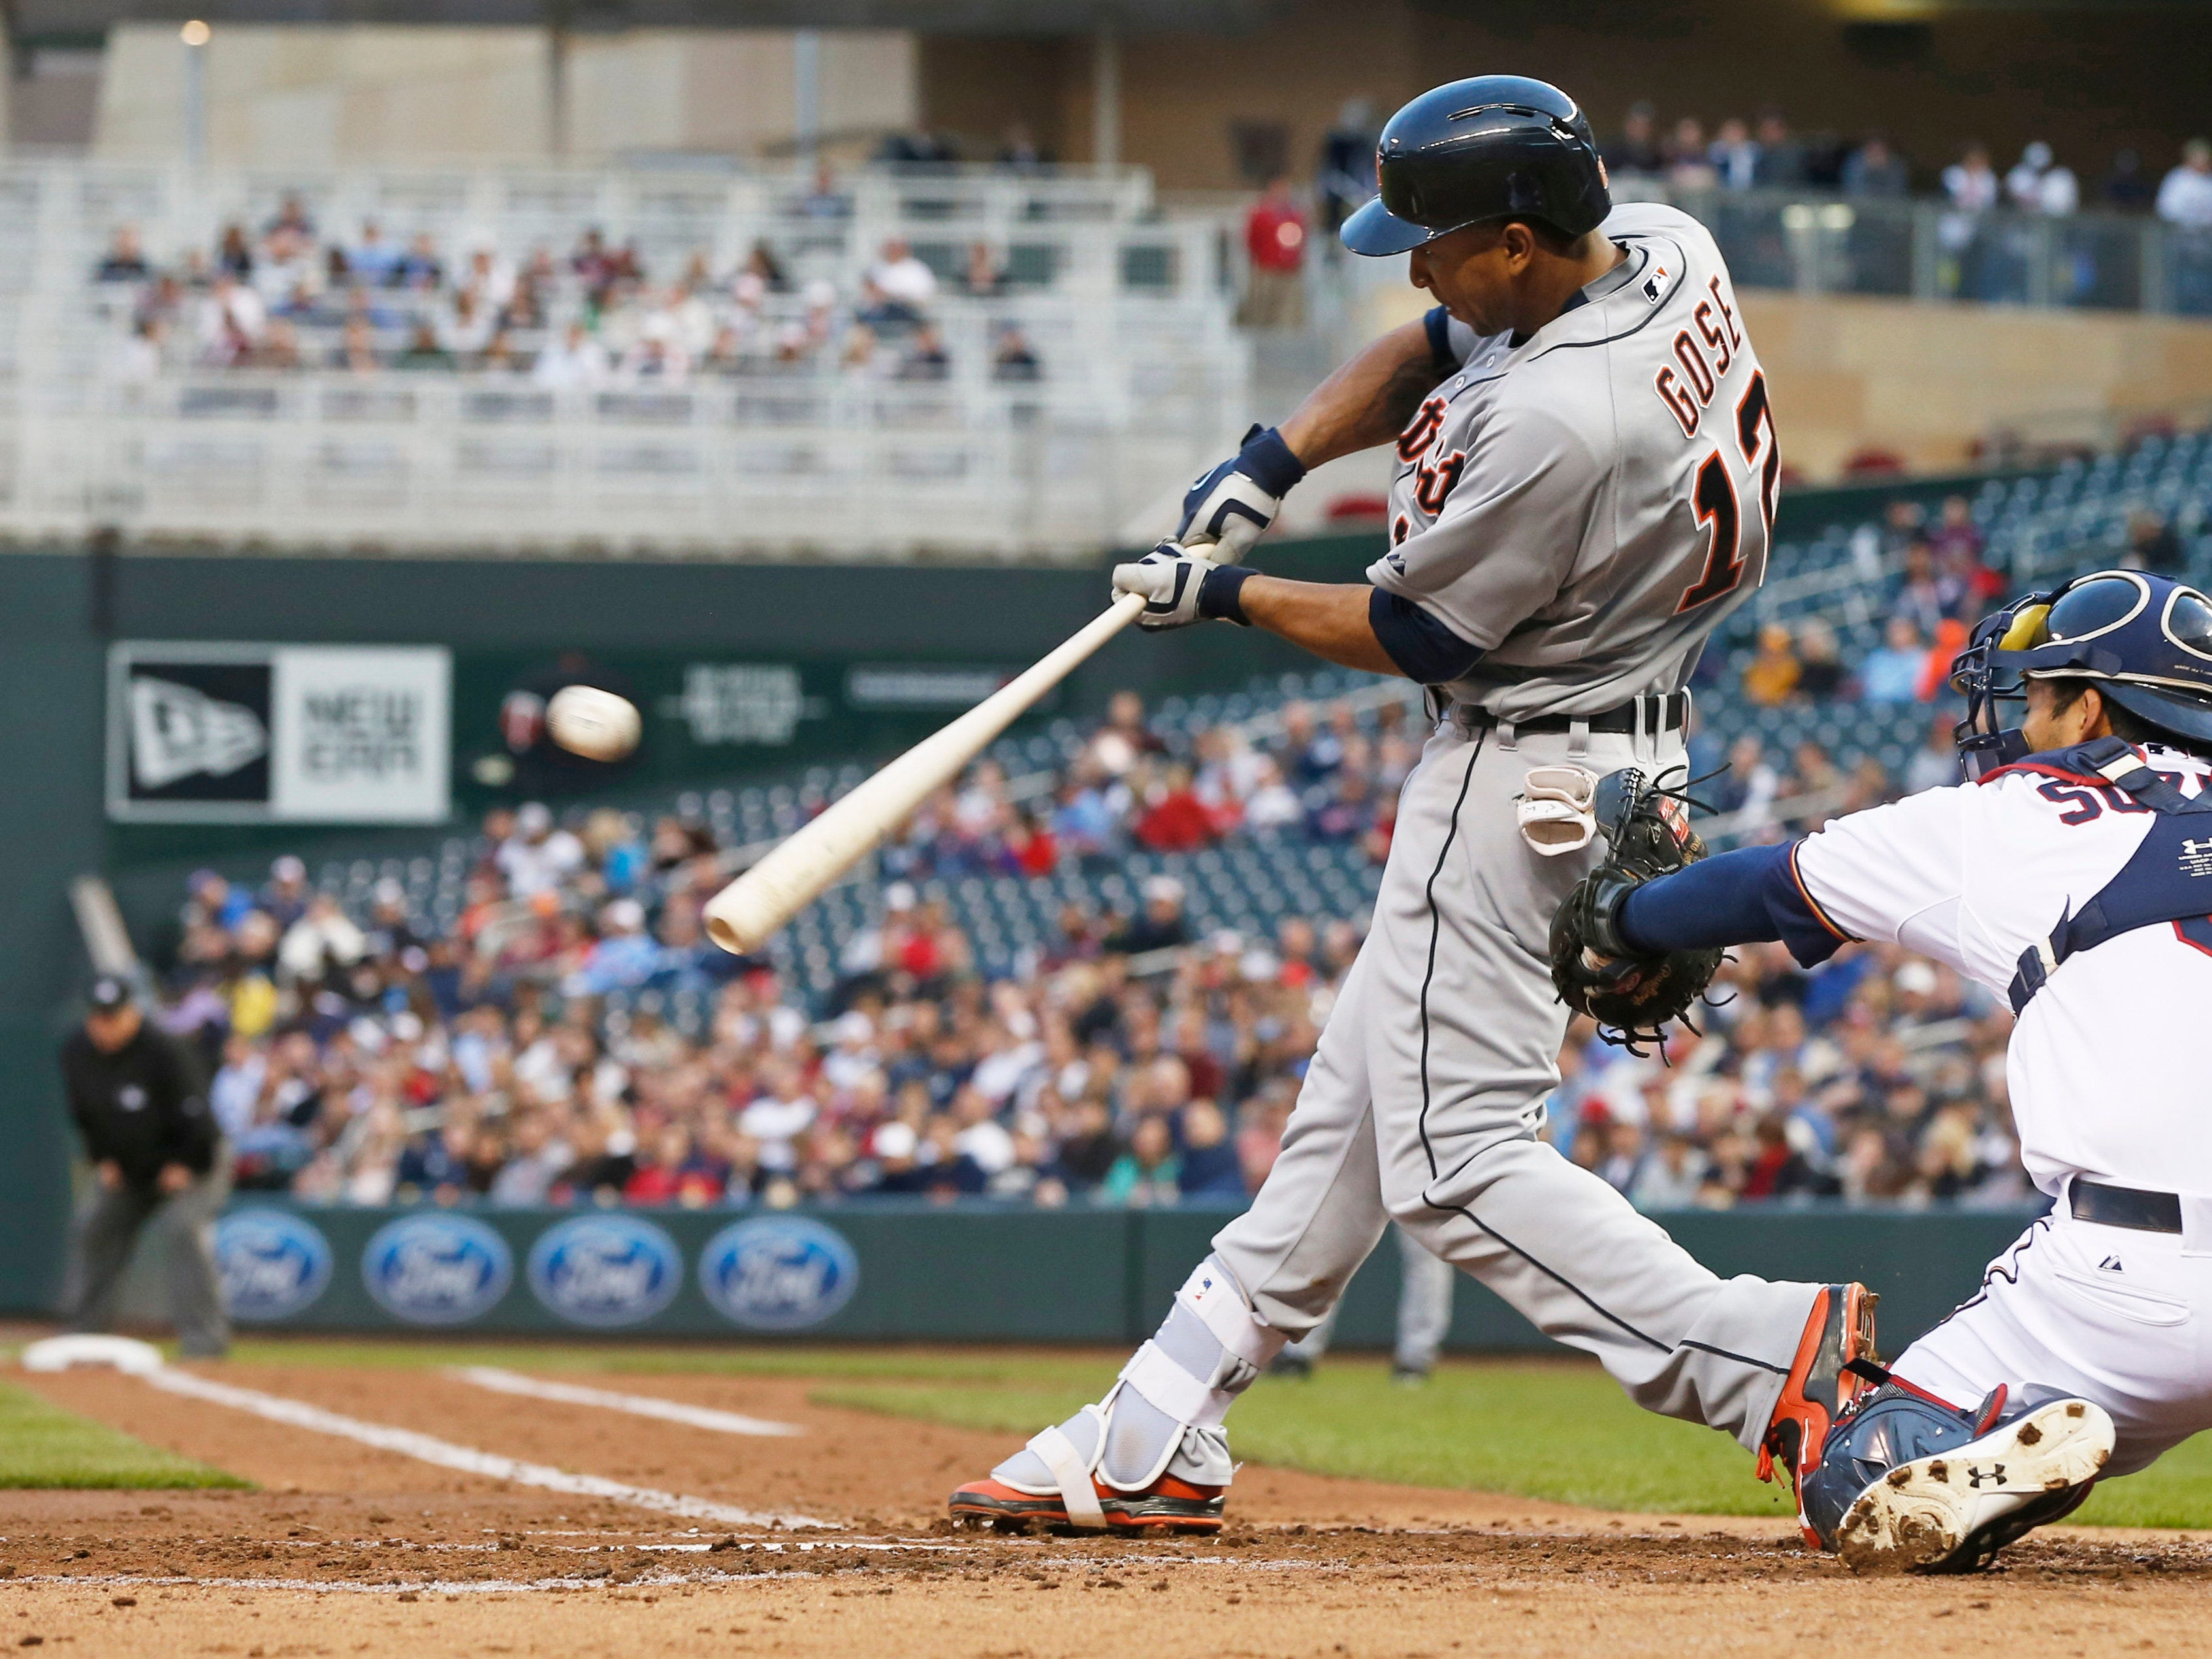 Detroit Tigers' Anthony Gose hits an RBI single in the third inning of a baseball game off Minnesota Twins pitcher Mike Pelfrey, Tuesday, April 28, 2015, in Minneapolis. (AP Photo/Jim Mone)